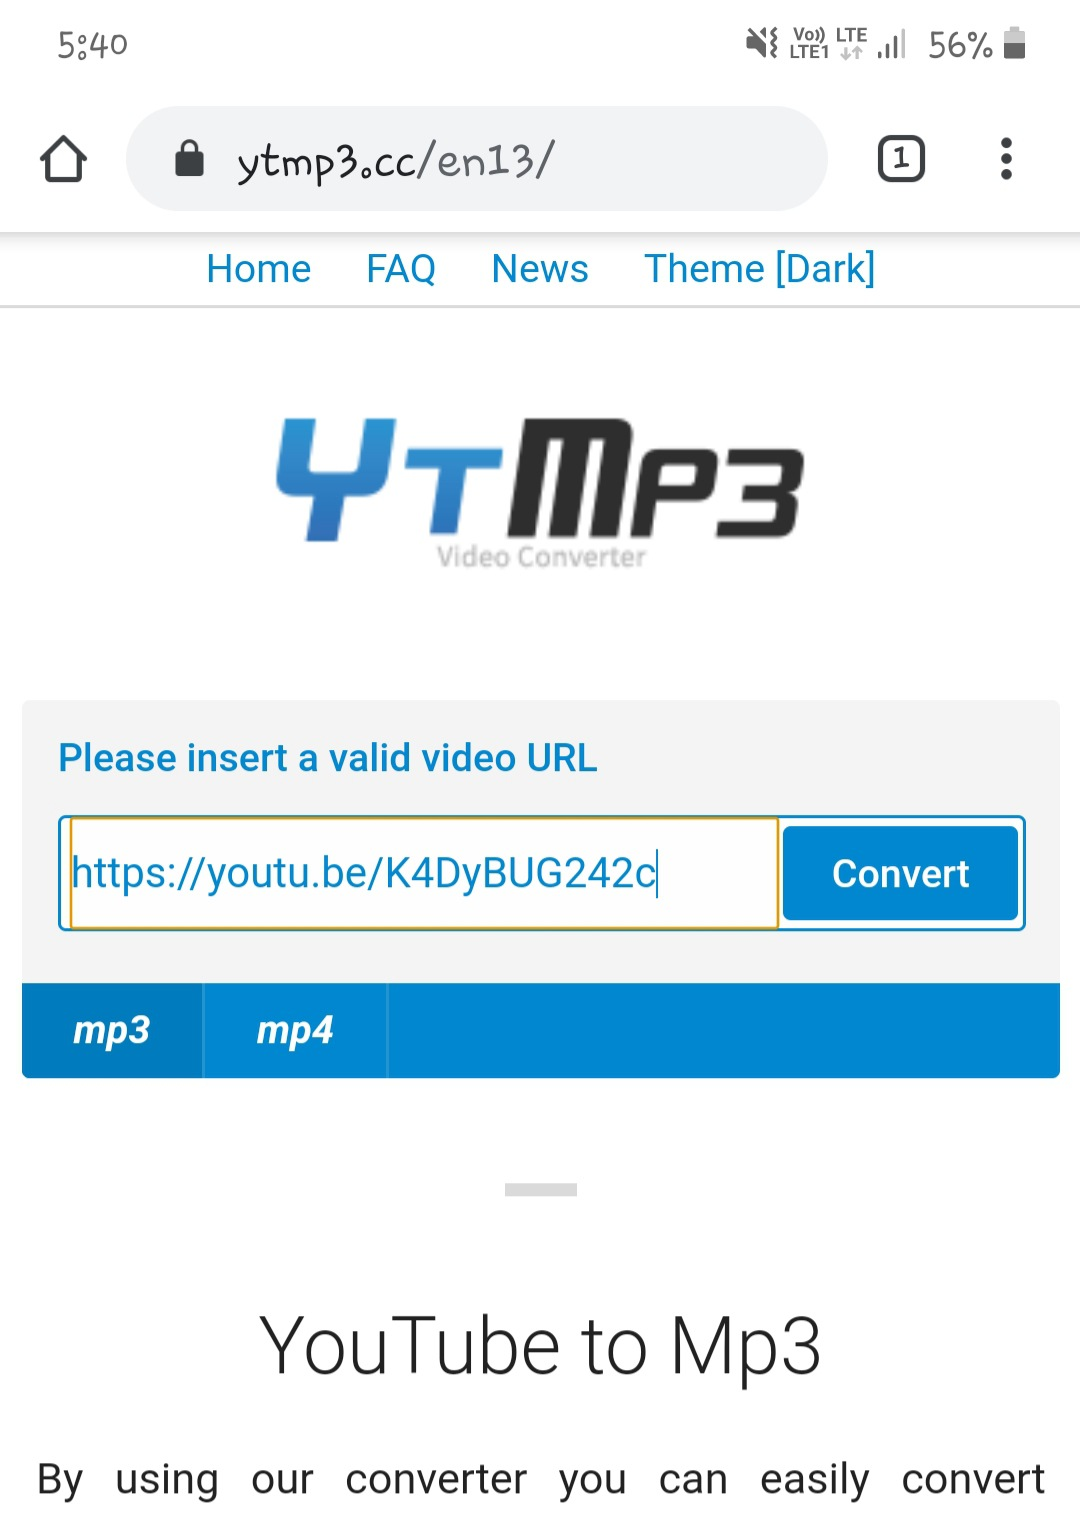 Download MP3 songs from YouTube